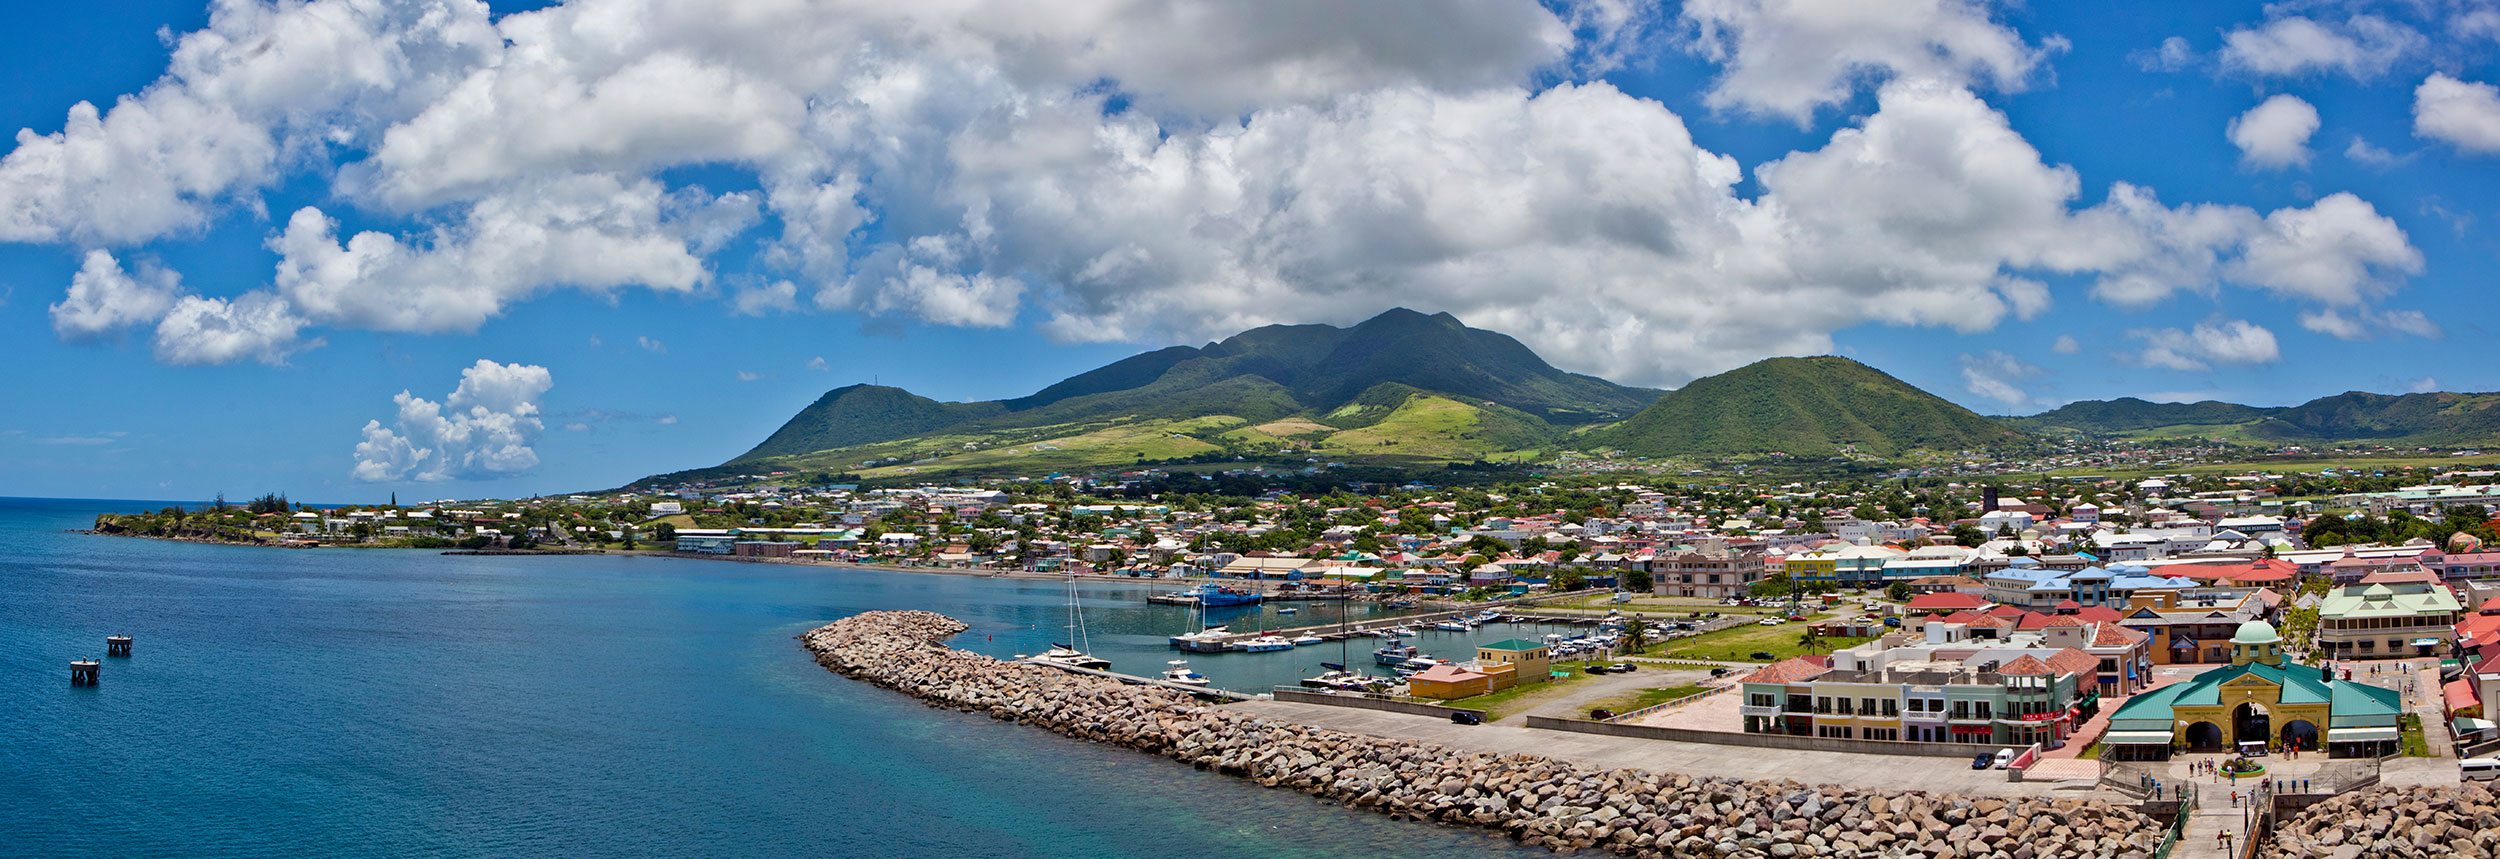 St.Kitts_Basseterre